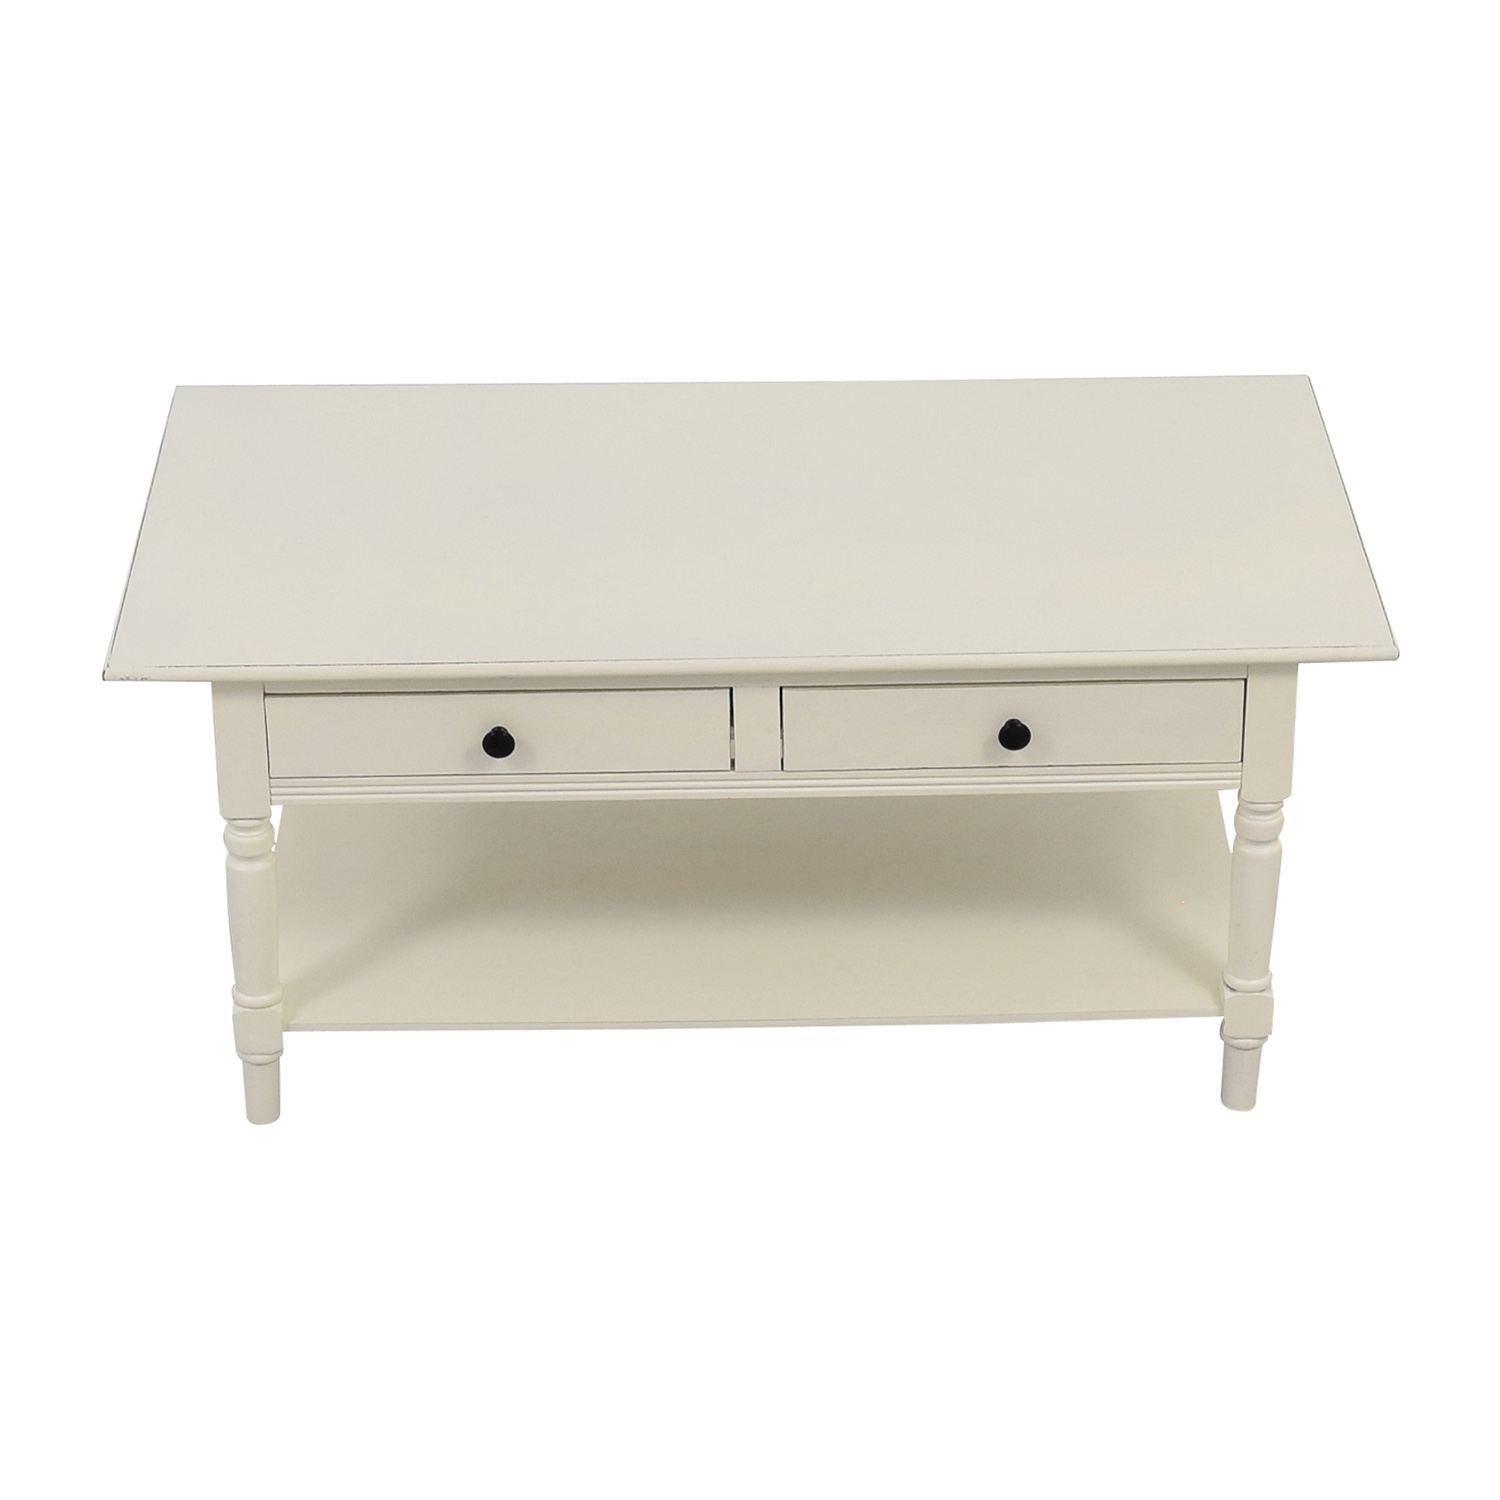 Macys Macys White Two-Drawer Coffee Table for sale